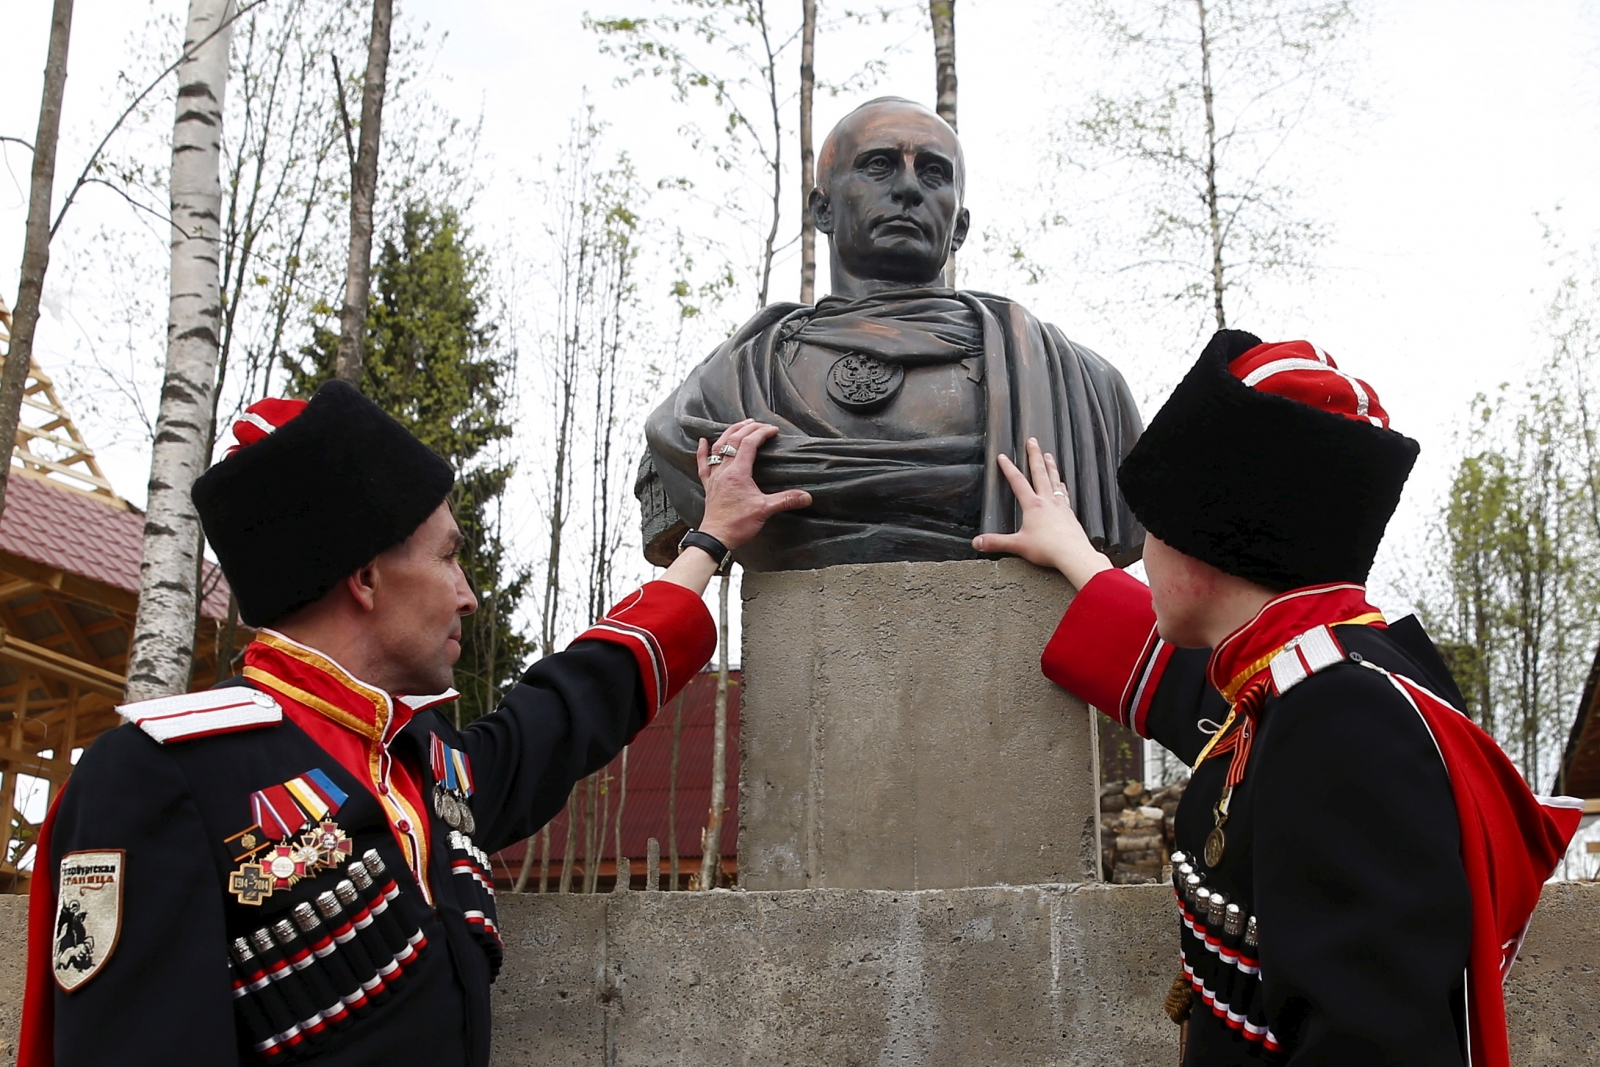 Cossacks with the Caeser bust of Putin